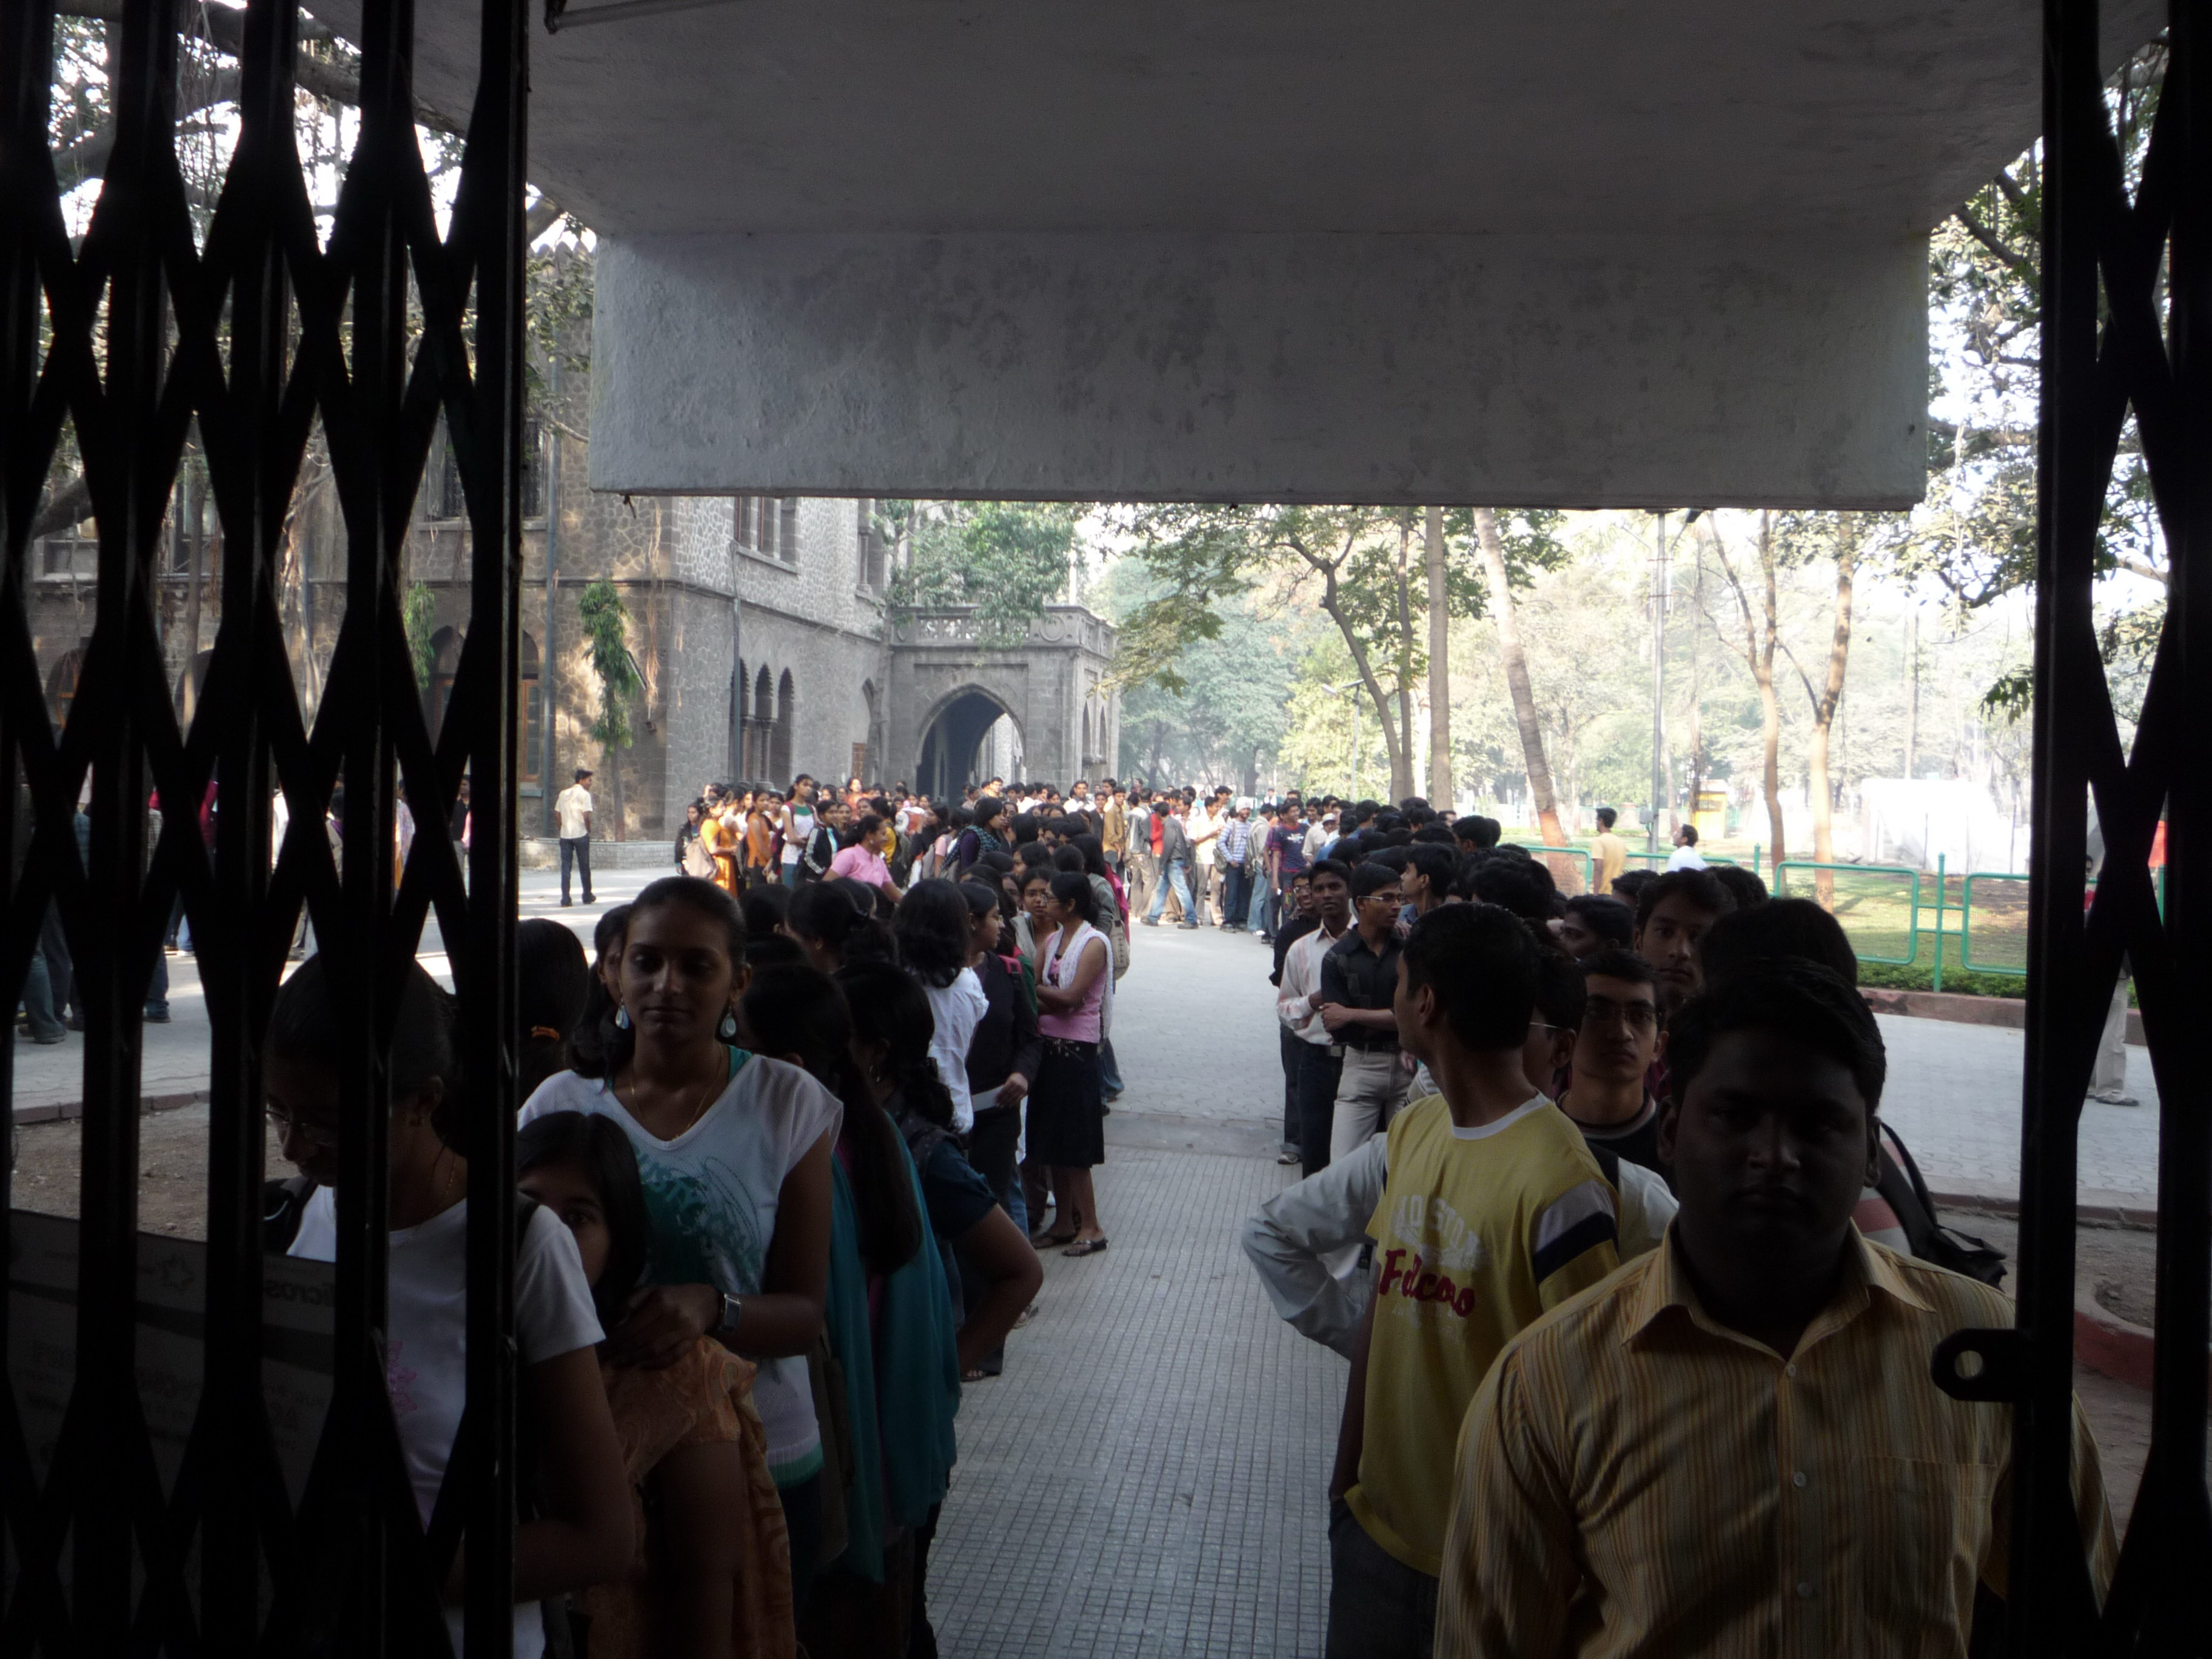 Students lined up at COEP auditorium